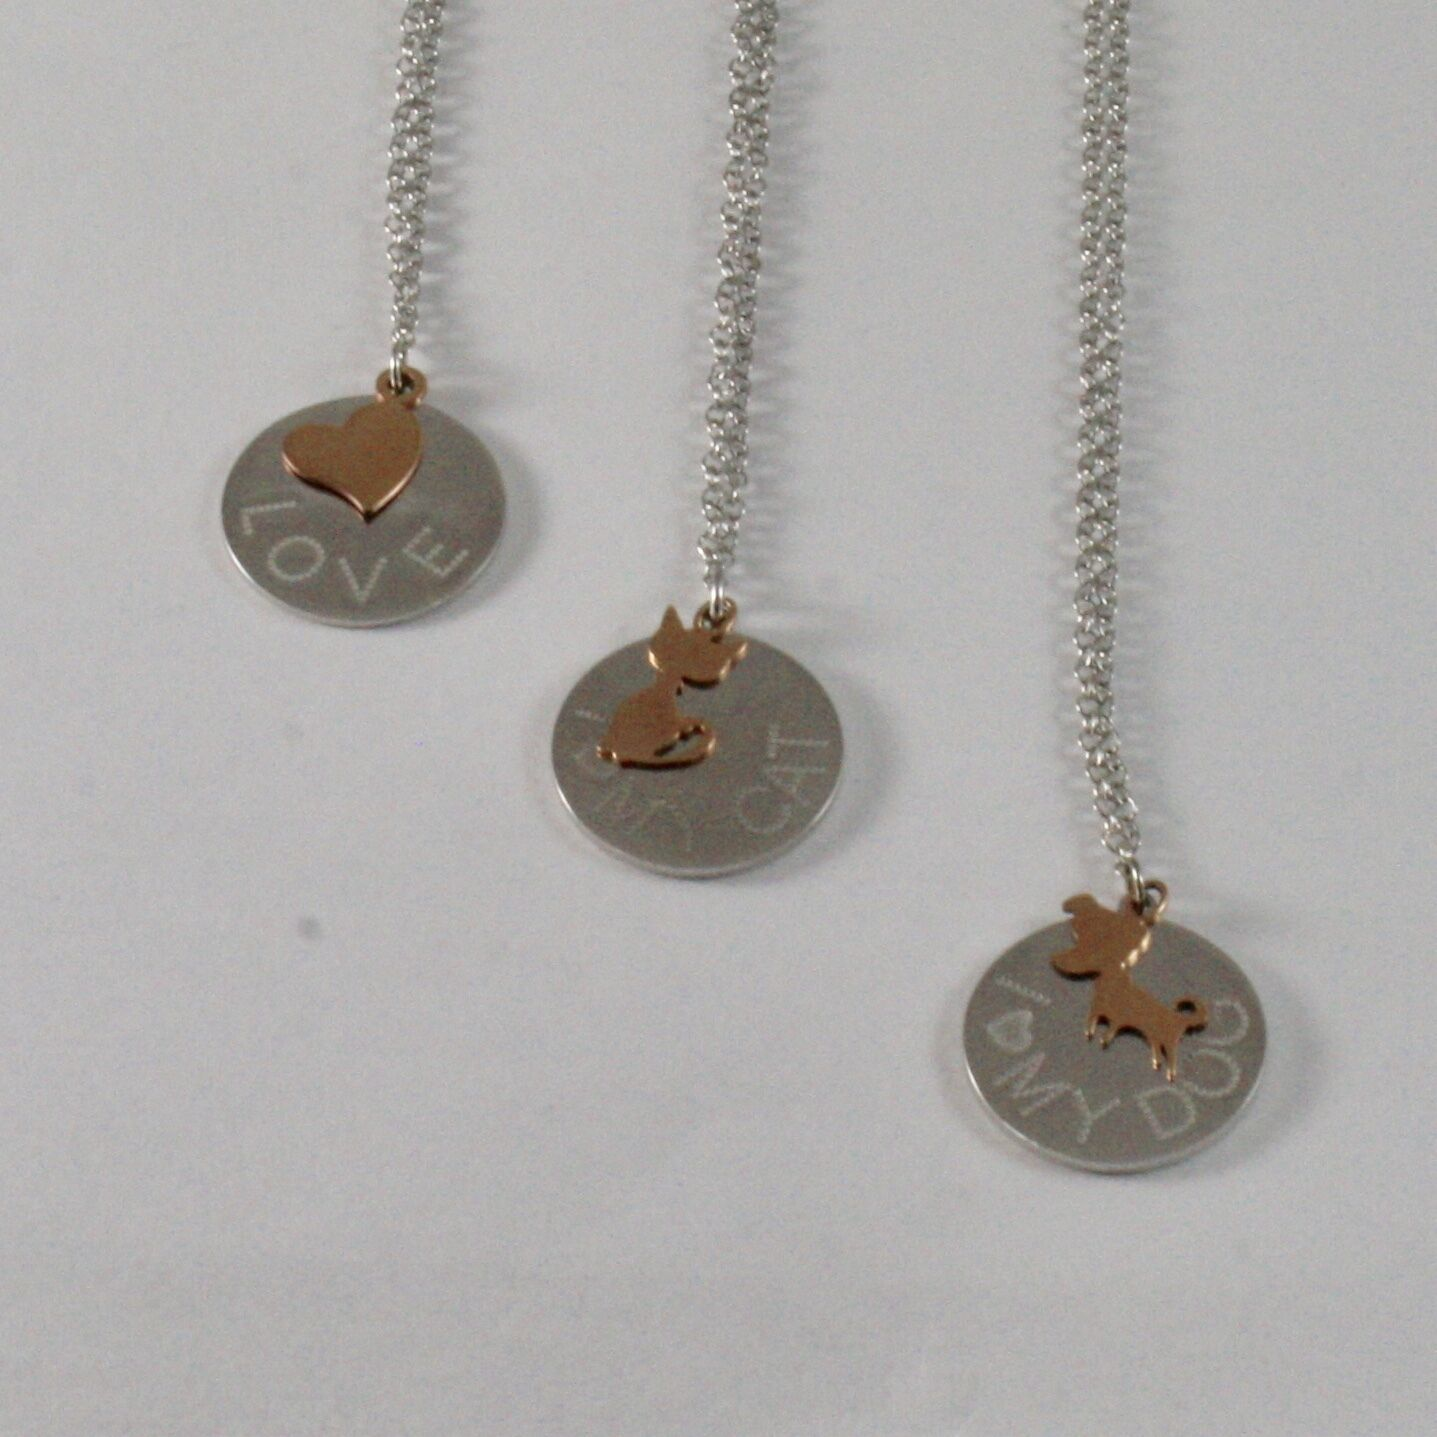 Silver Necklace 925 Jack&co with Heart Dog or Cat in Rose Gold 9KT 60 CM